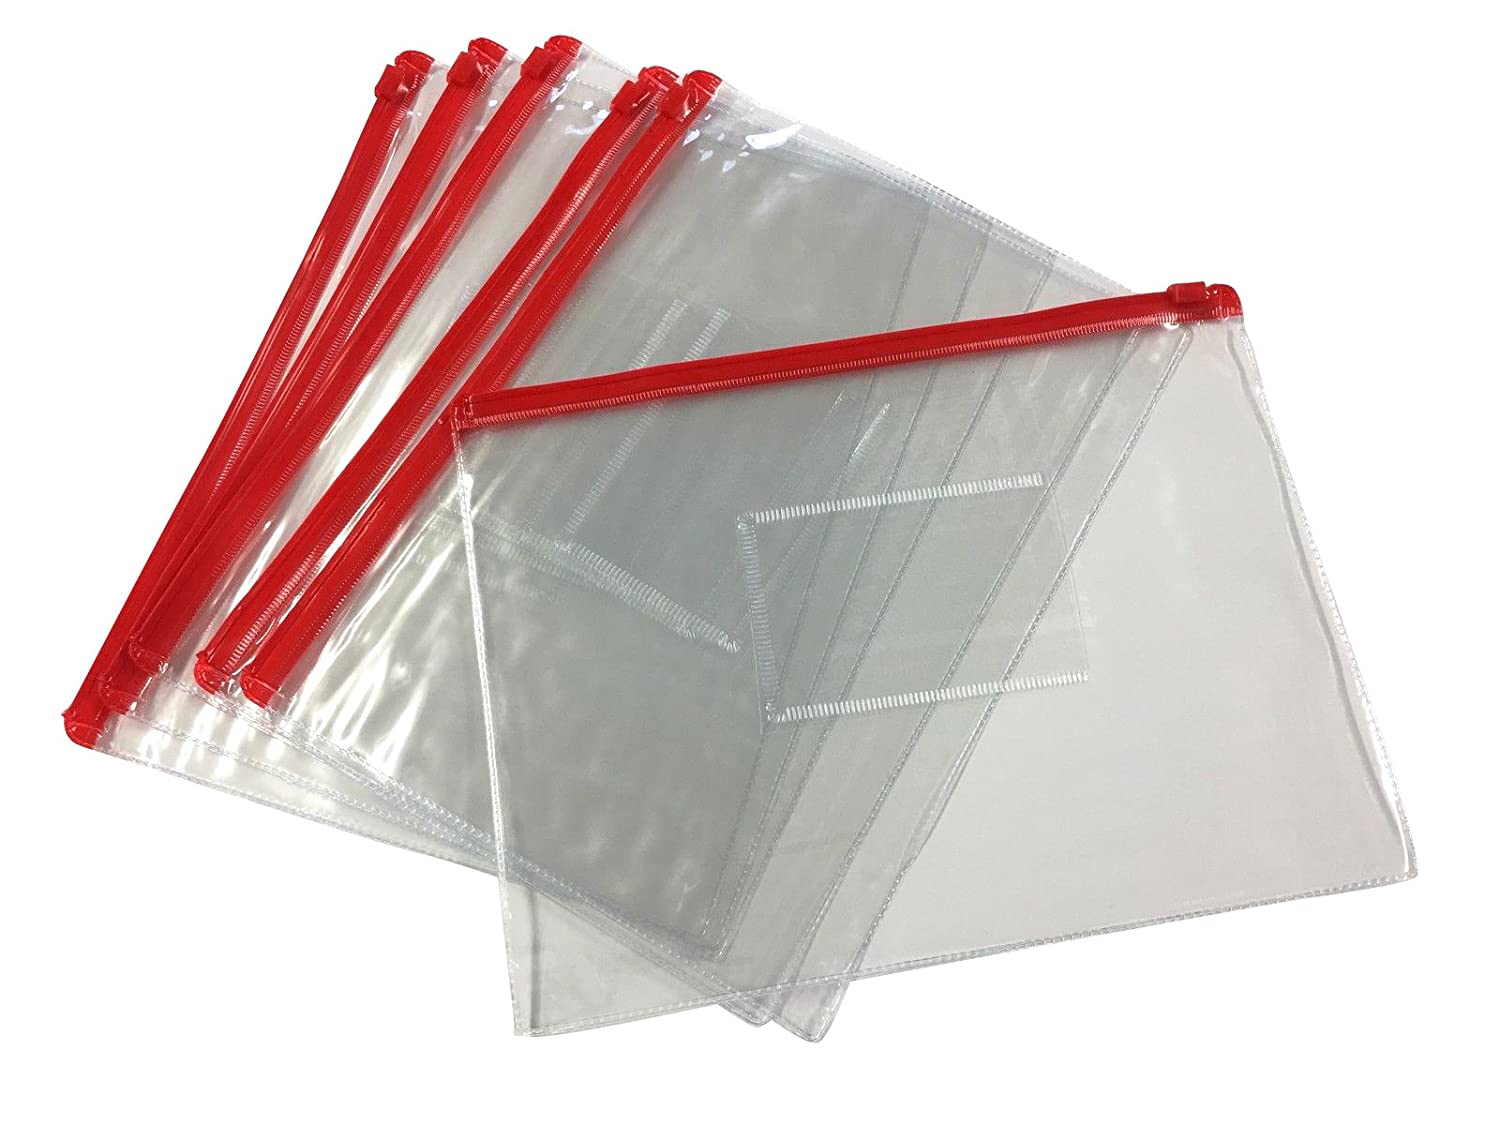 Pack of 12 A5 Red Zip Zippy Bags - Document Clear Plastic Transparent Storage Wallet